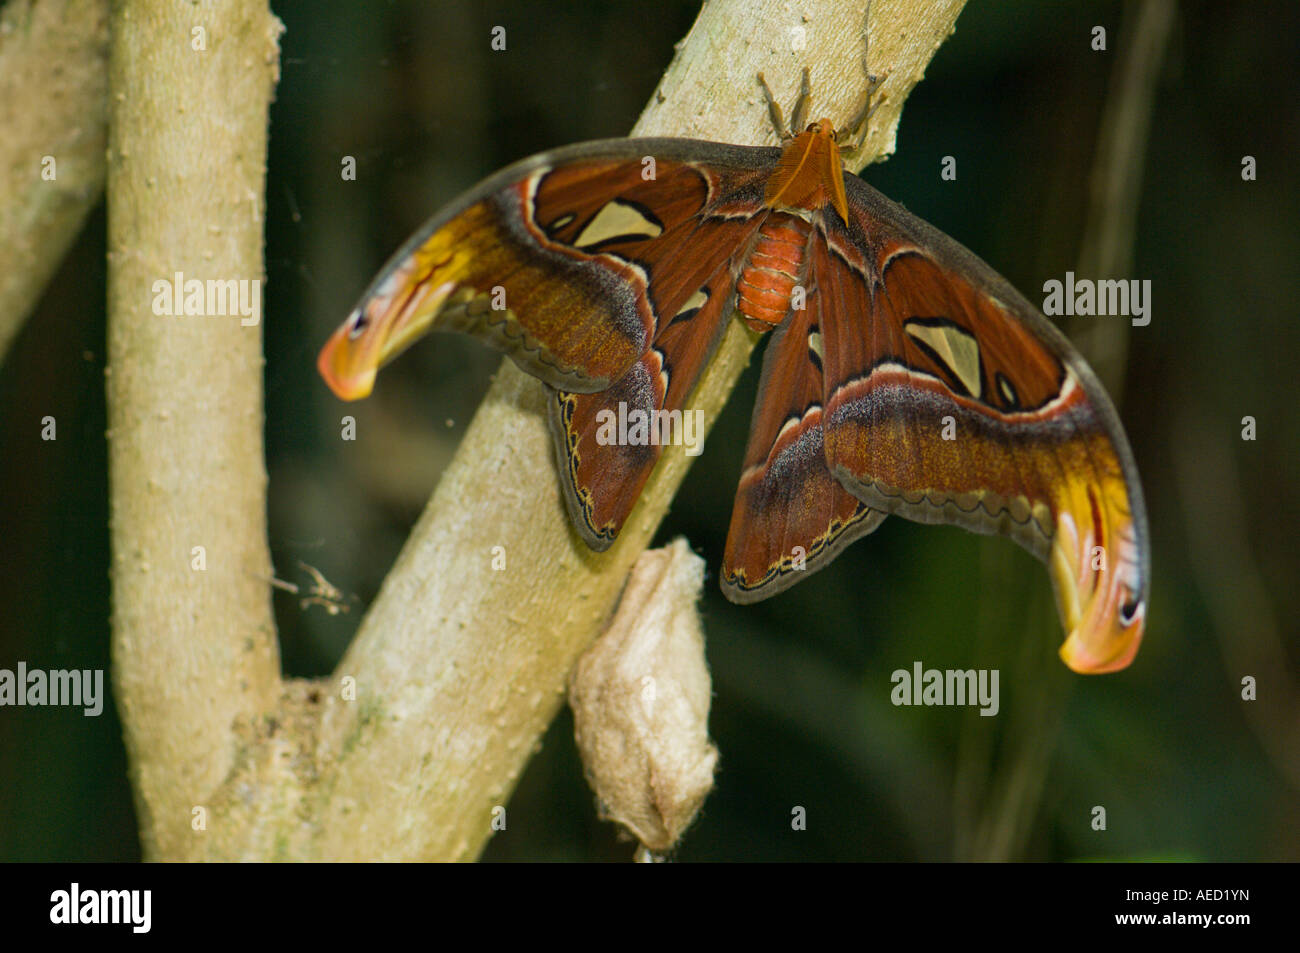 Atlas moth (Attacus atlas), a Saturniidae moth claimed to be the largest butterfly in the world. - Stock Image